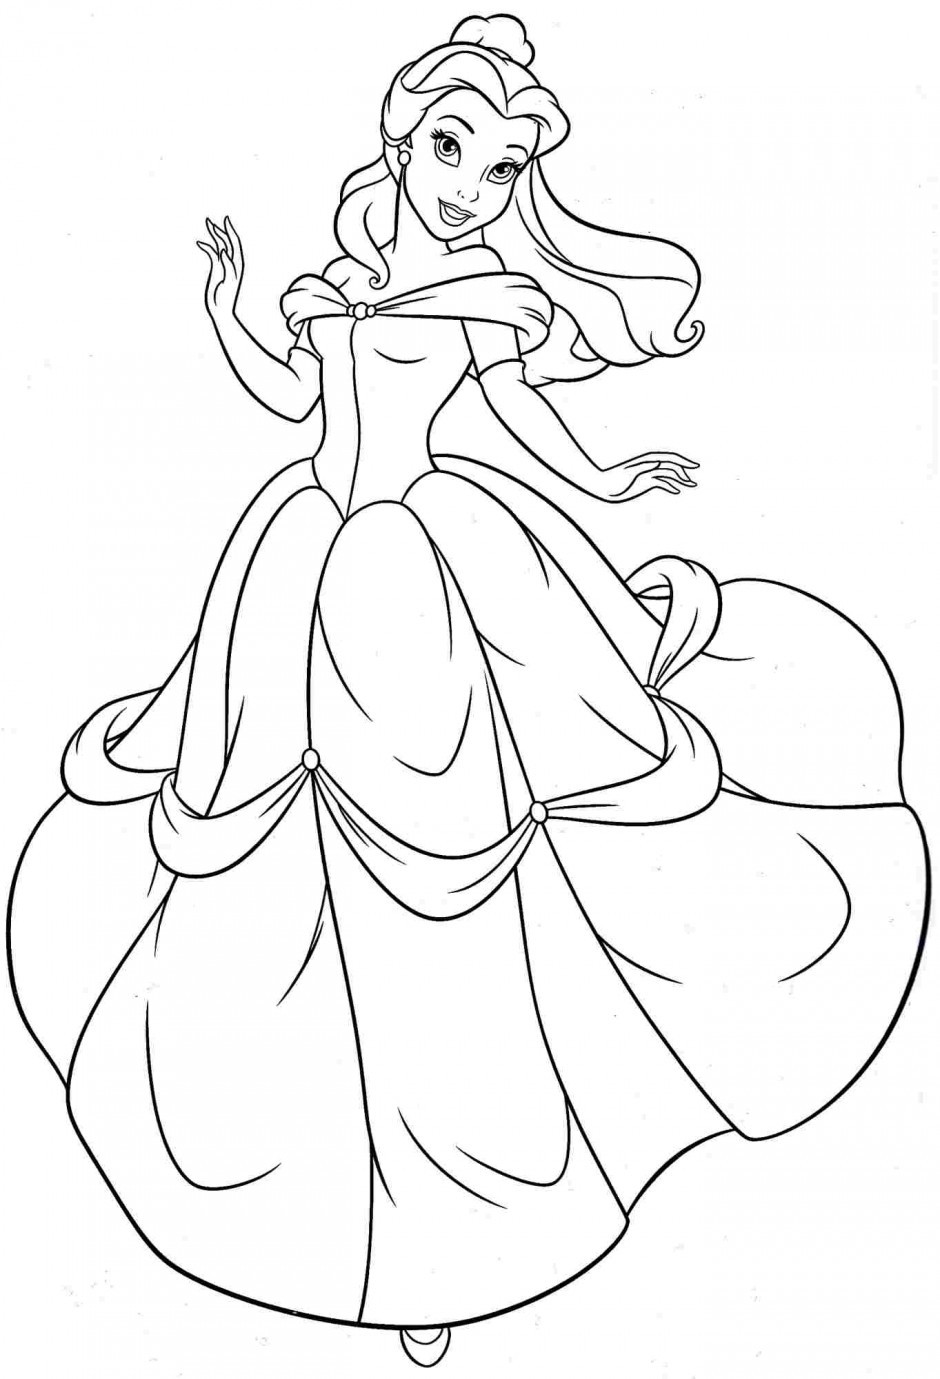 Coloring Pages For Kids Princesses  Free Printable Belle Coloring Pages For Kids